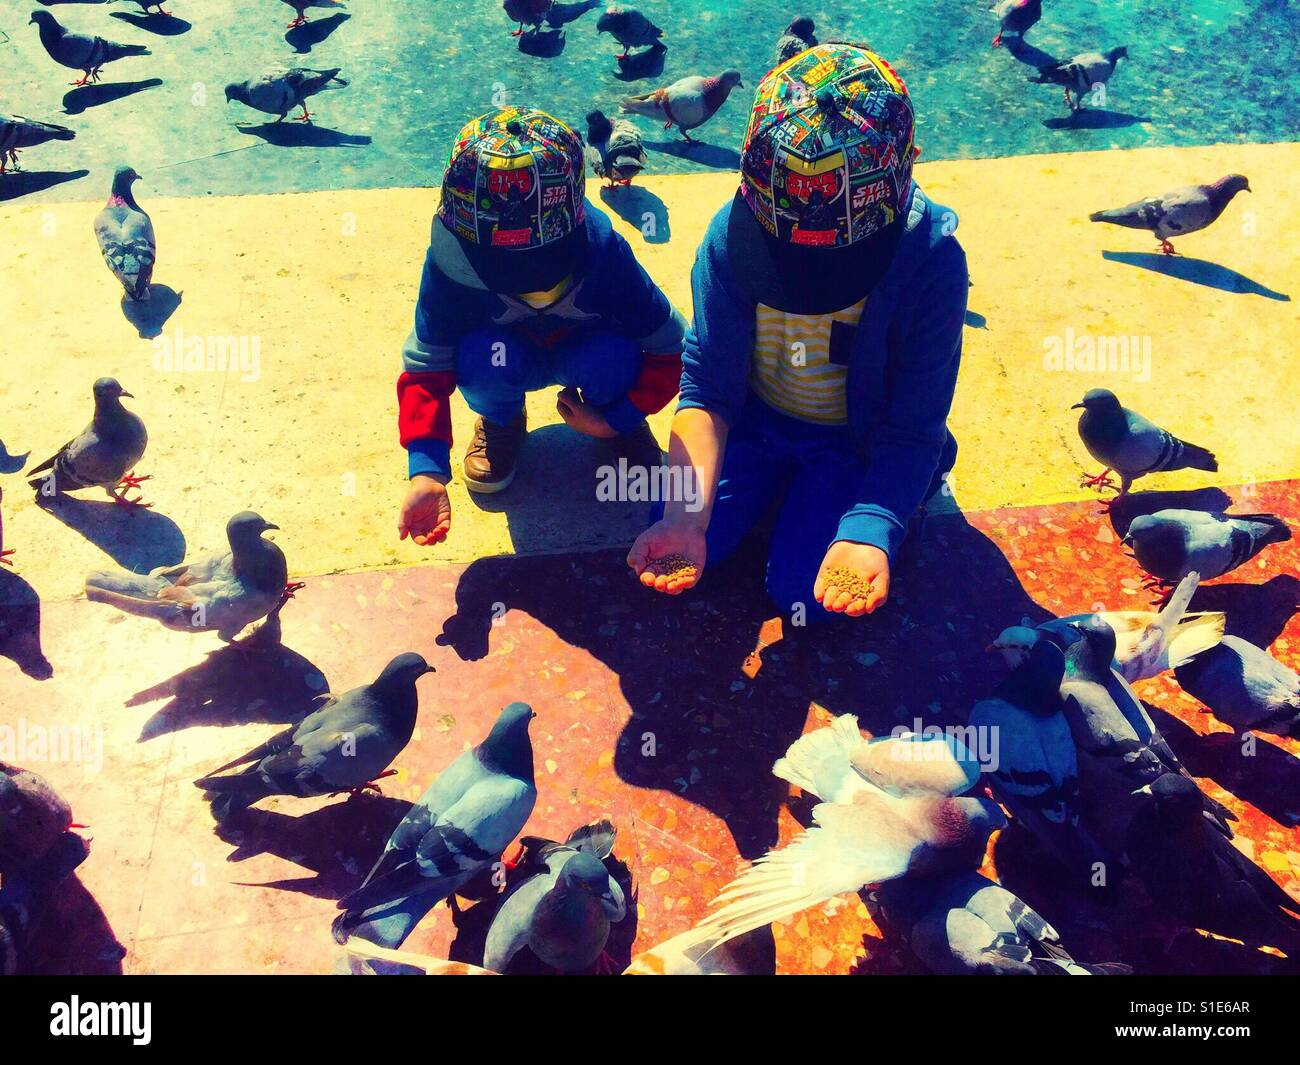 Two young brothers squat and kneel down to feed pigeons. - Stock Image